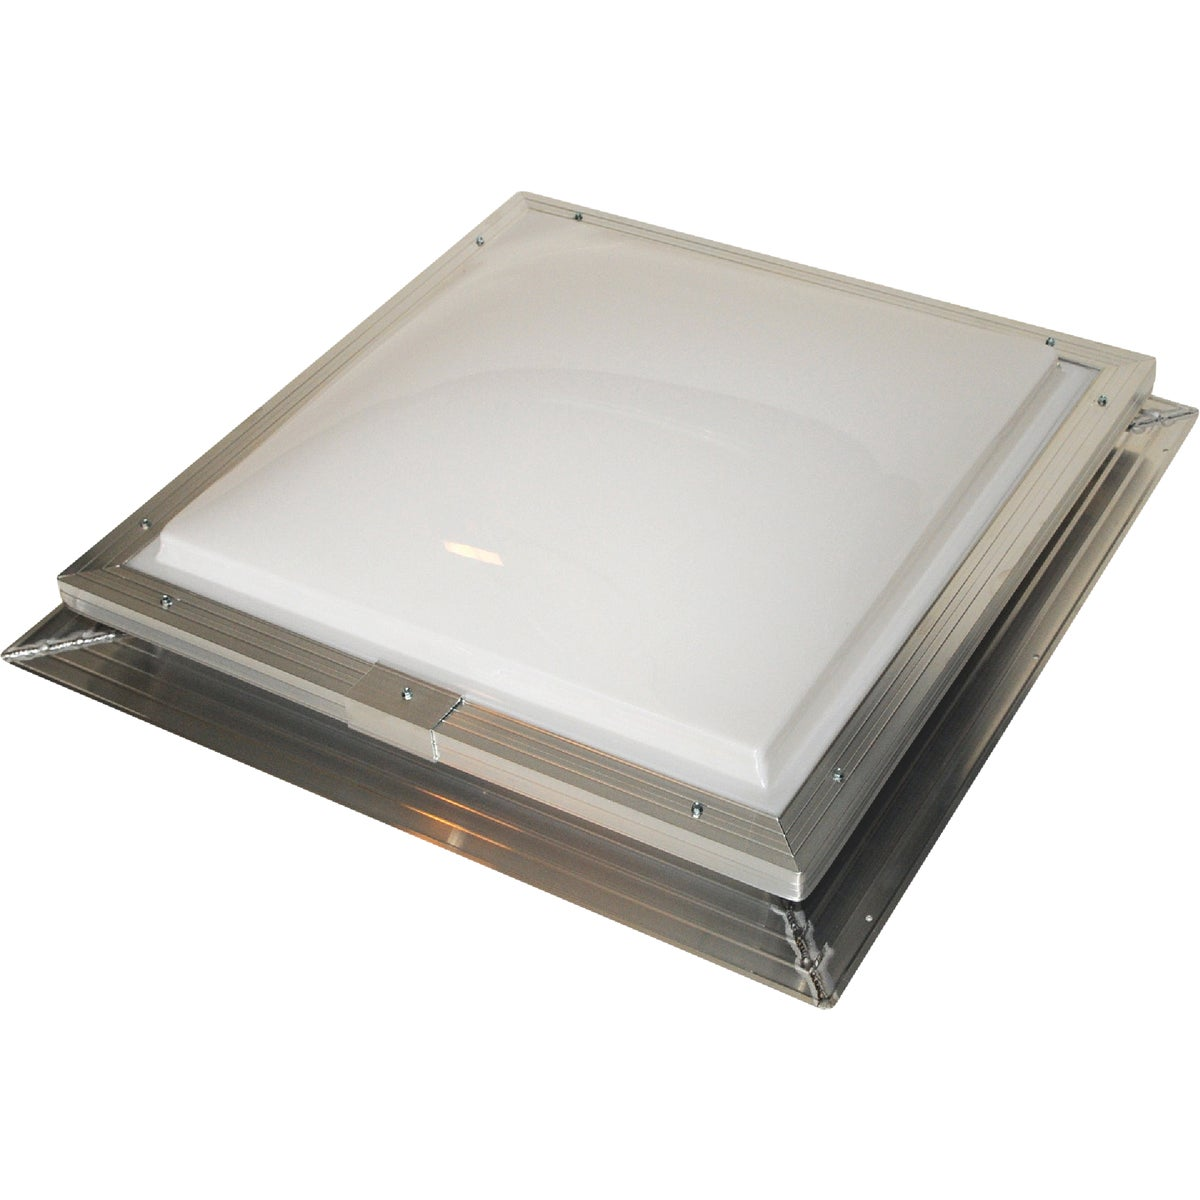 2X2 WH/CL 2DOME SKYLIGHT